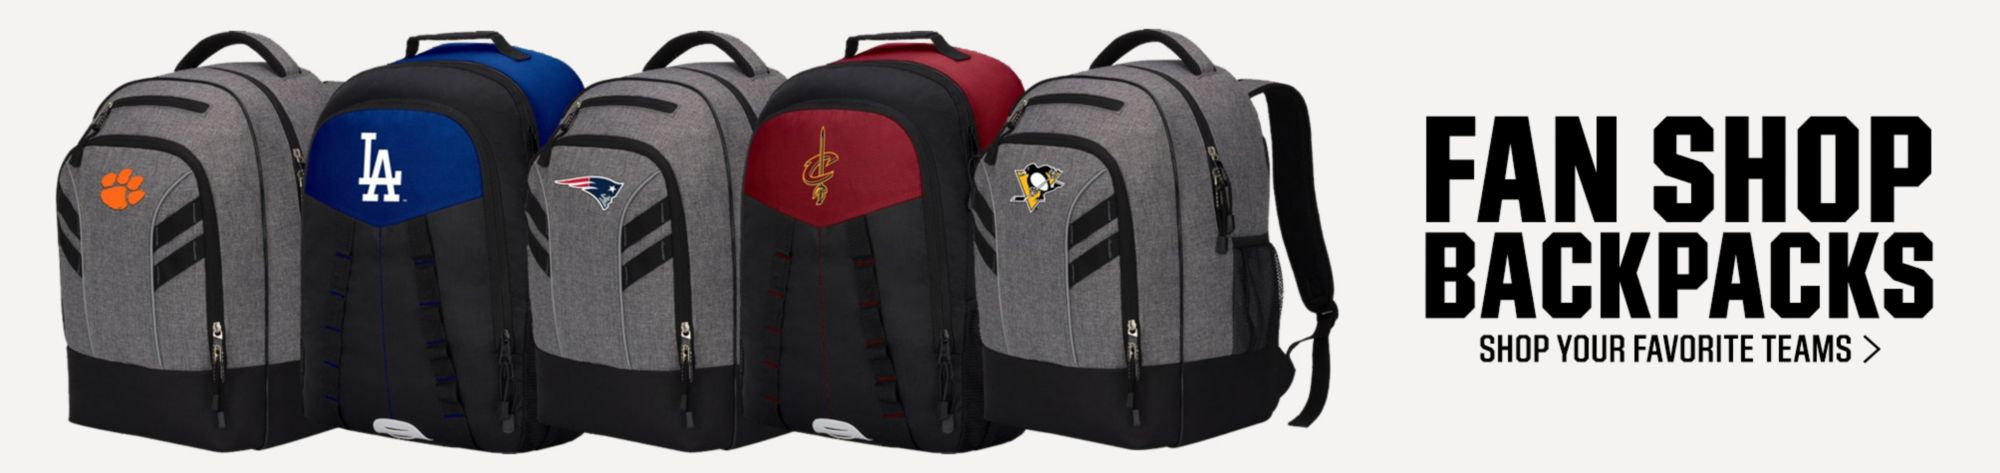 Fan Shop Backpacks Shop your favorite teams